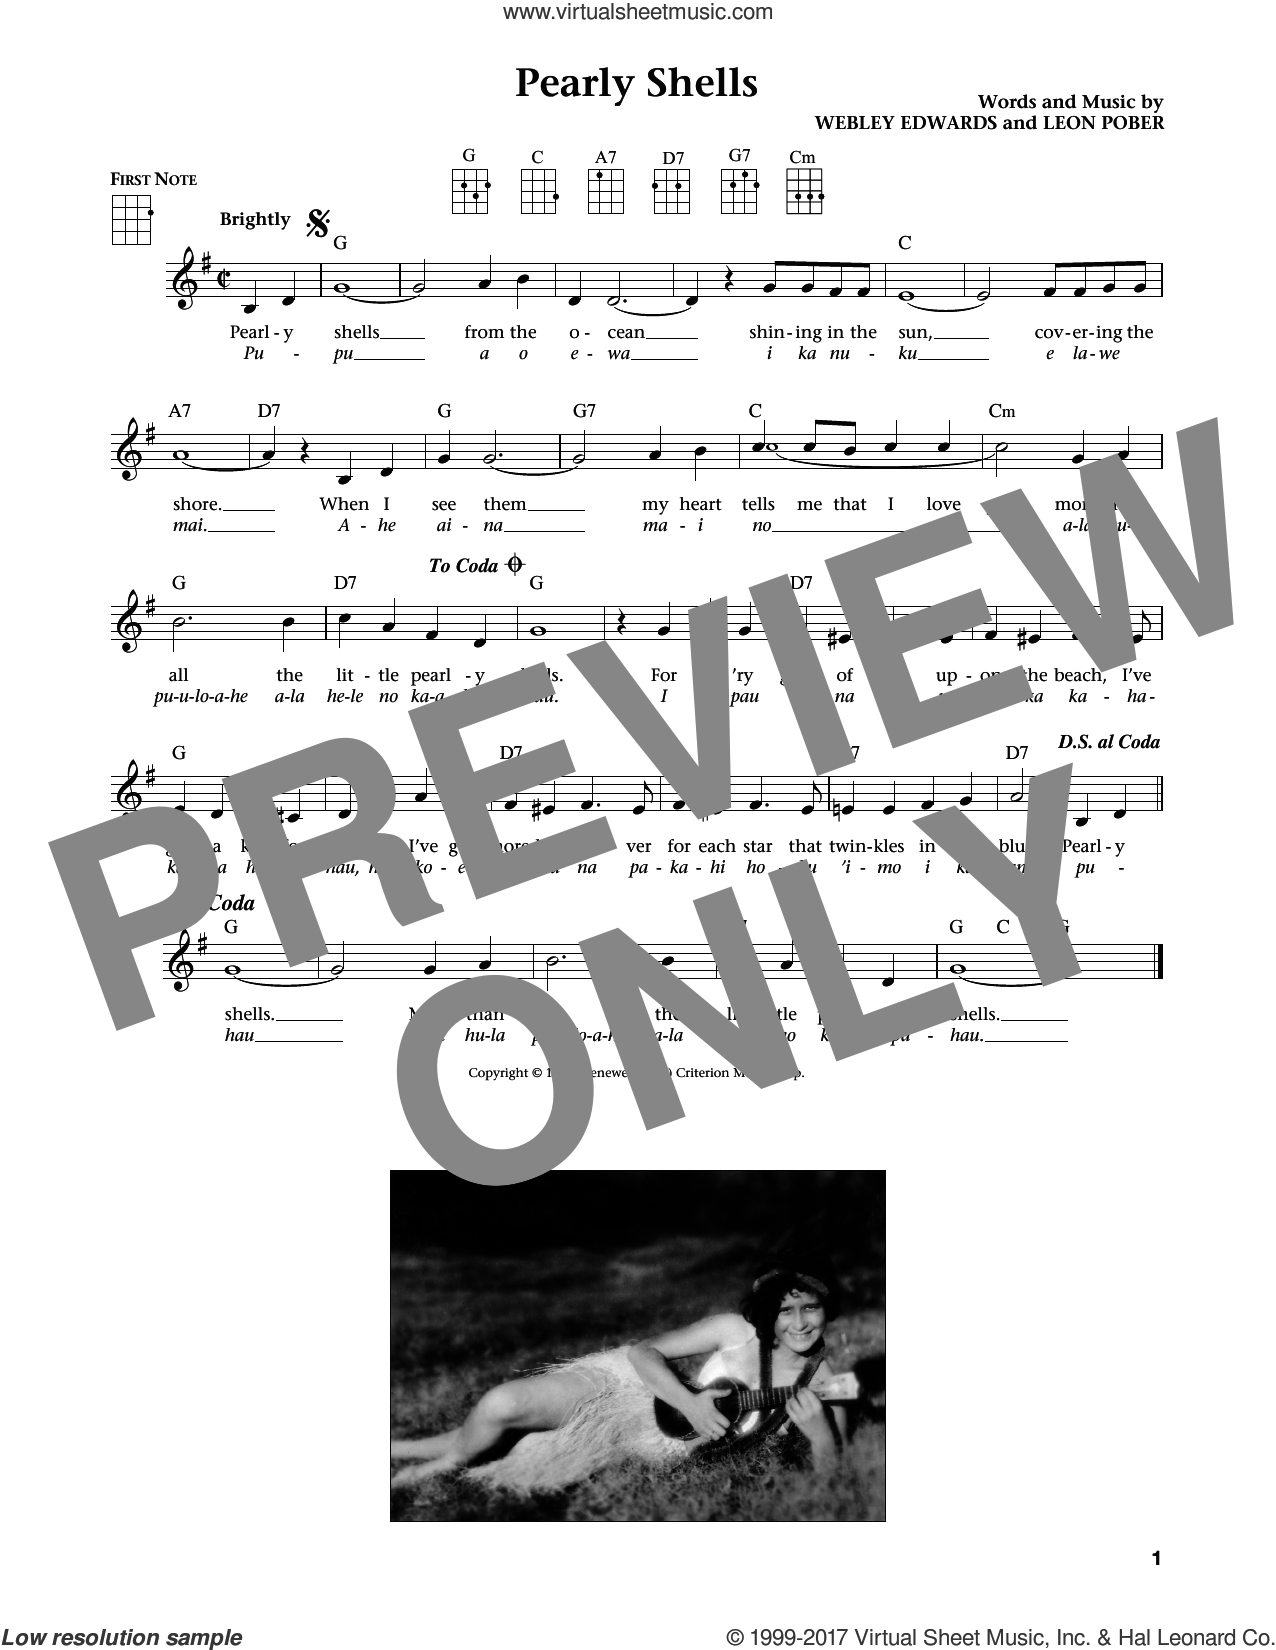 Pearly Shells (Pupu O Ewa) sheet music for ukulele by Leon Pober and Webley Edwards. Score Image Preview.